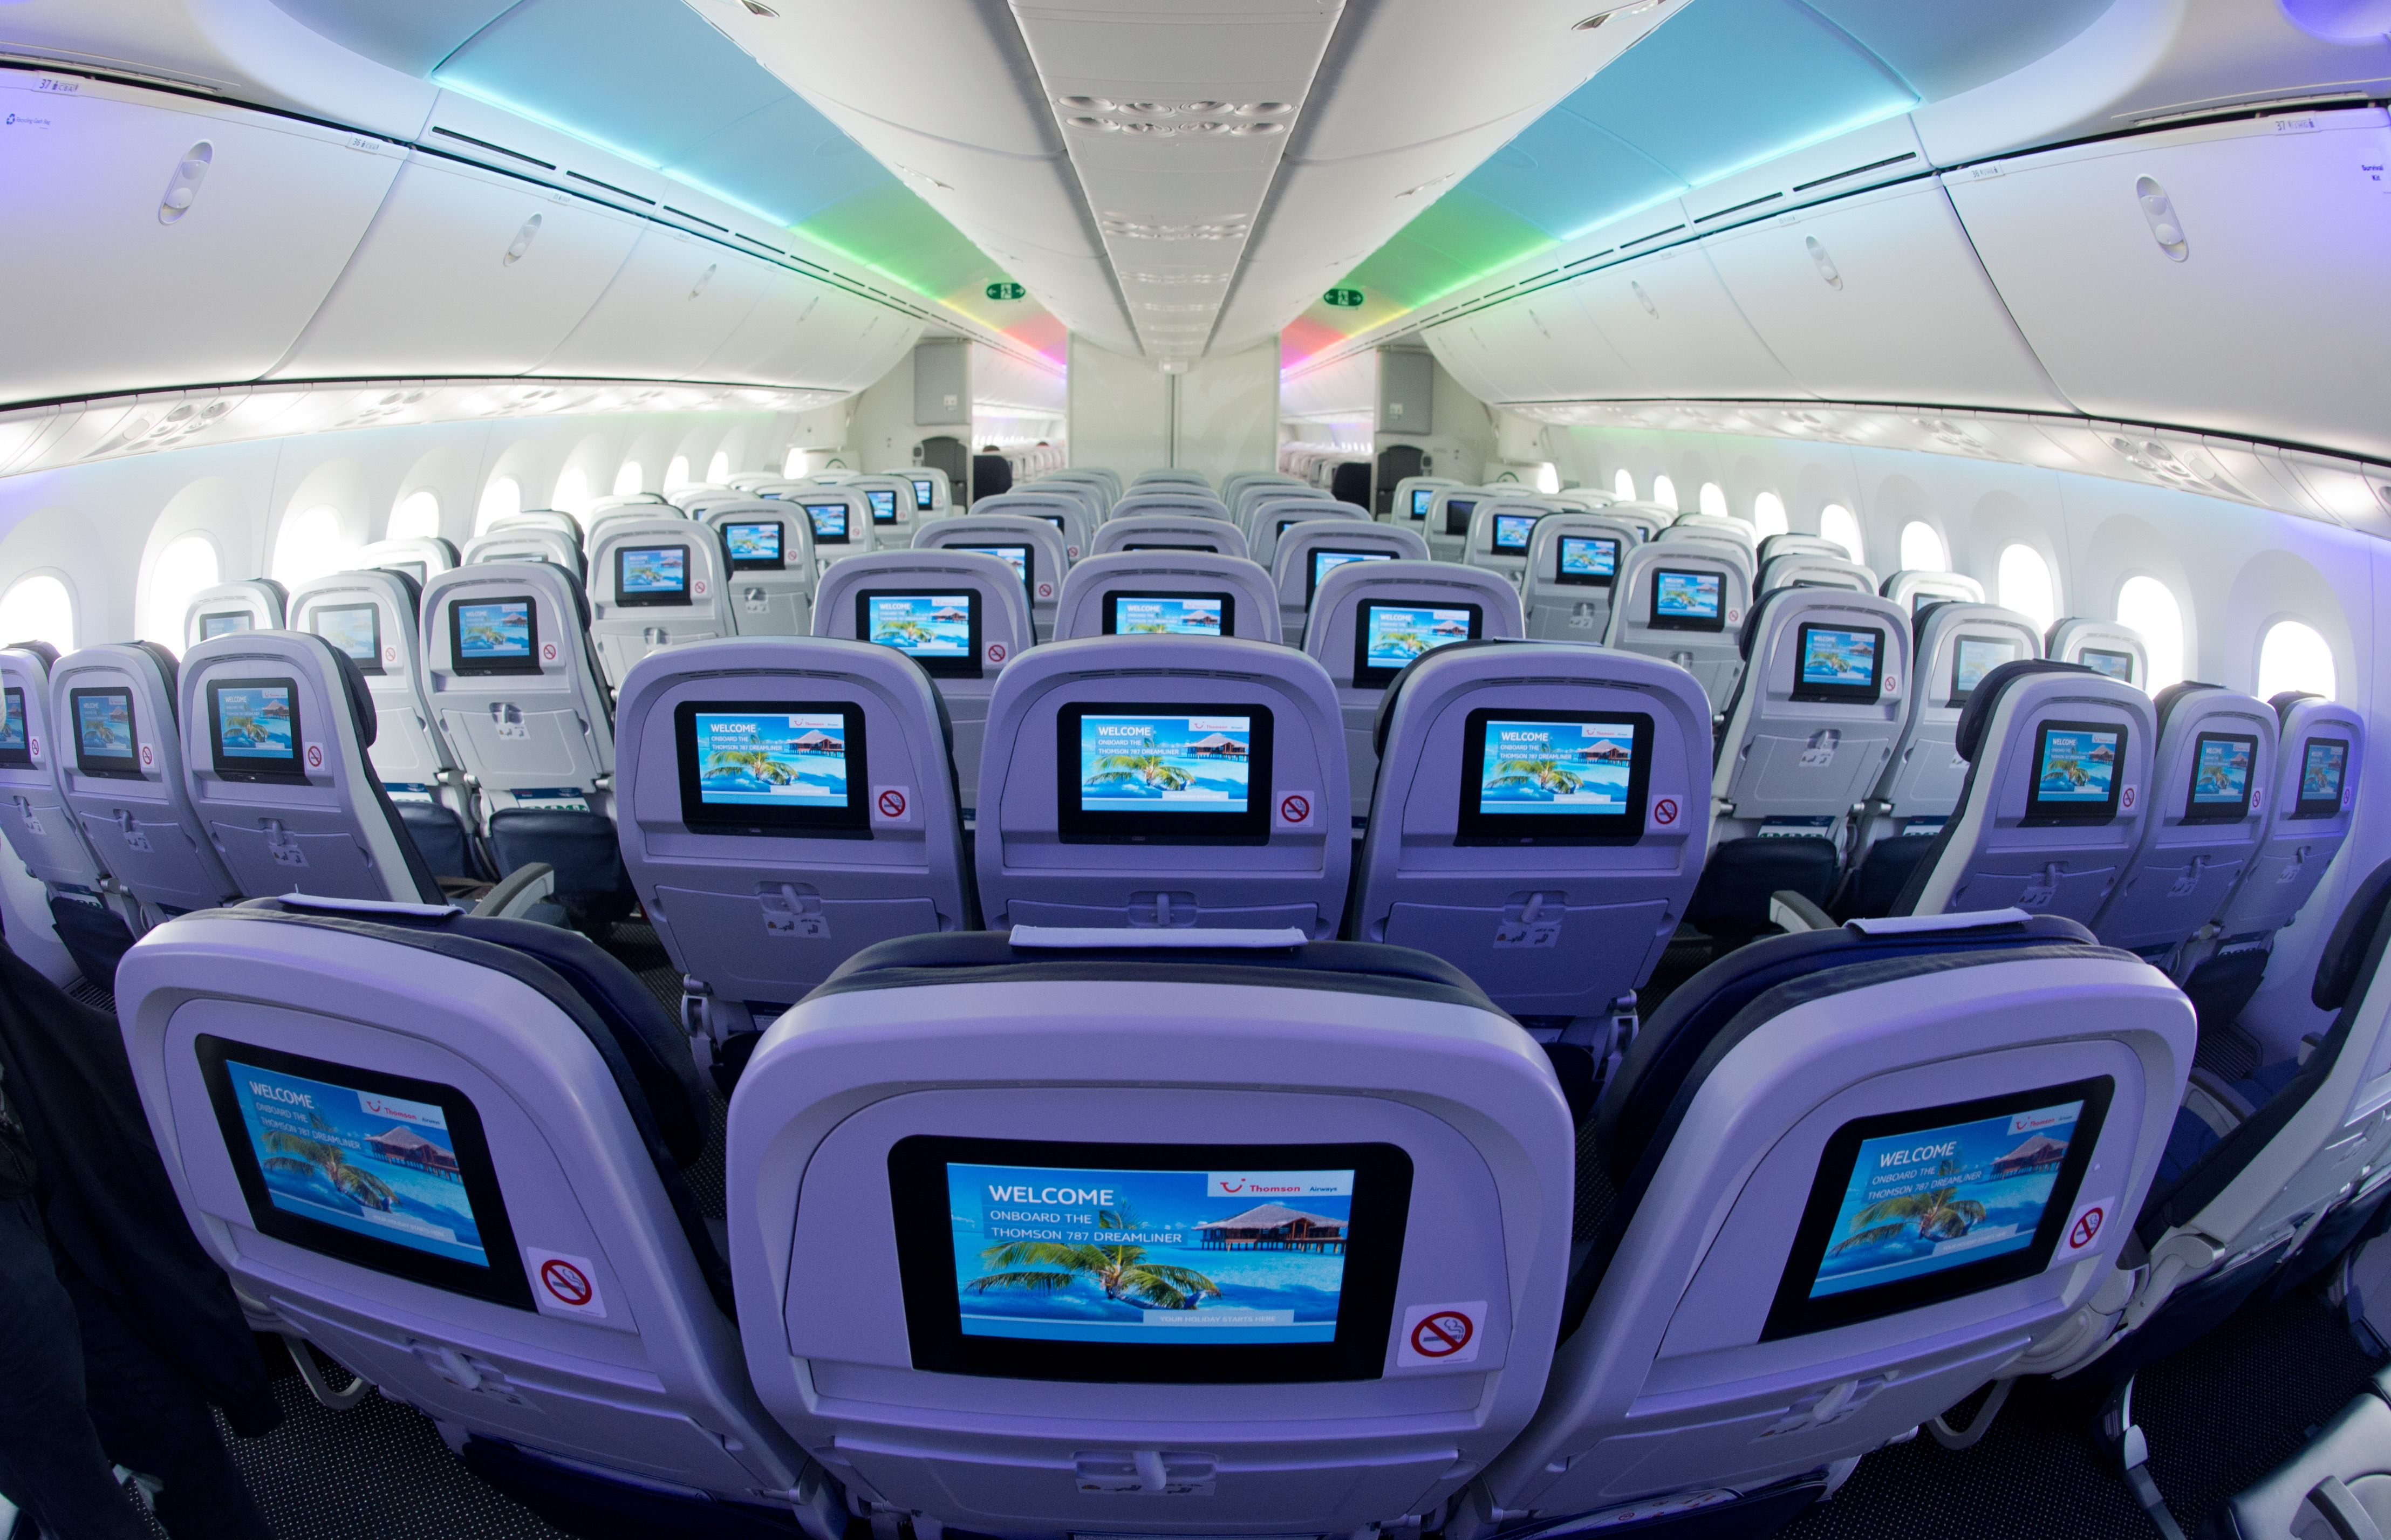 New York Tips For Finding Adjacent Airline Seats Without